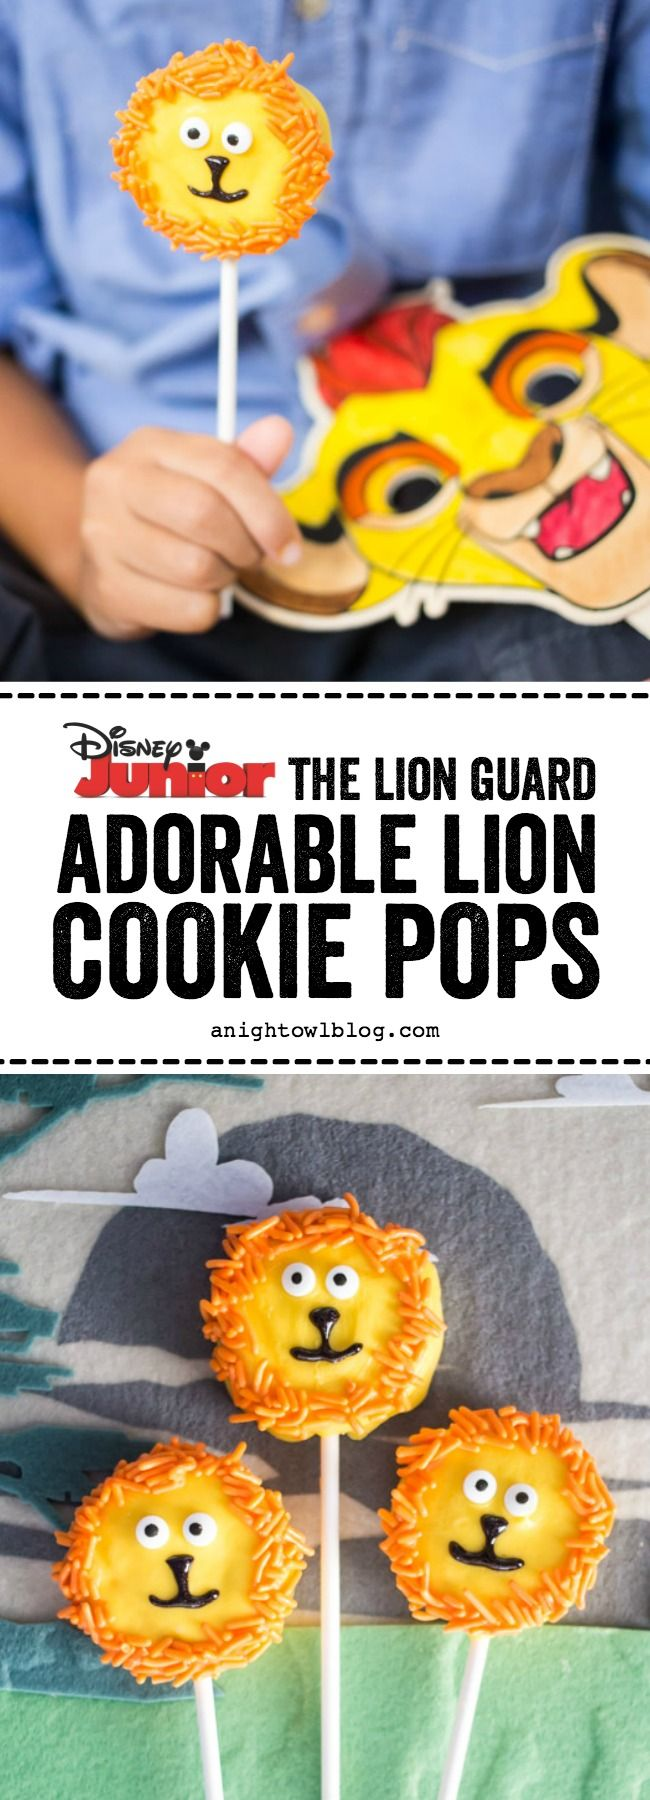 This summer put the YAY in your FRiYAY with The Lion Guard on Disney Junior Channel and these adorable Lion Cookie Pops for your kiddos! AD #DisneyJuniorFRiYAY